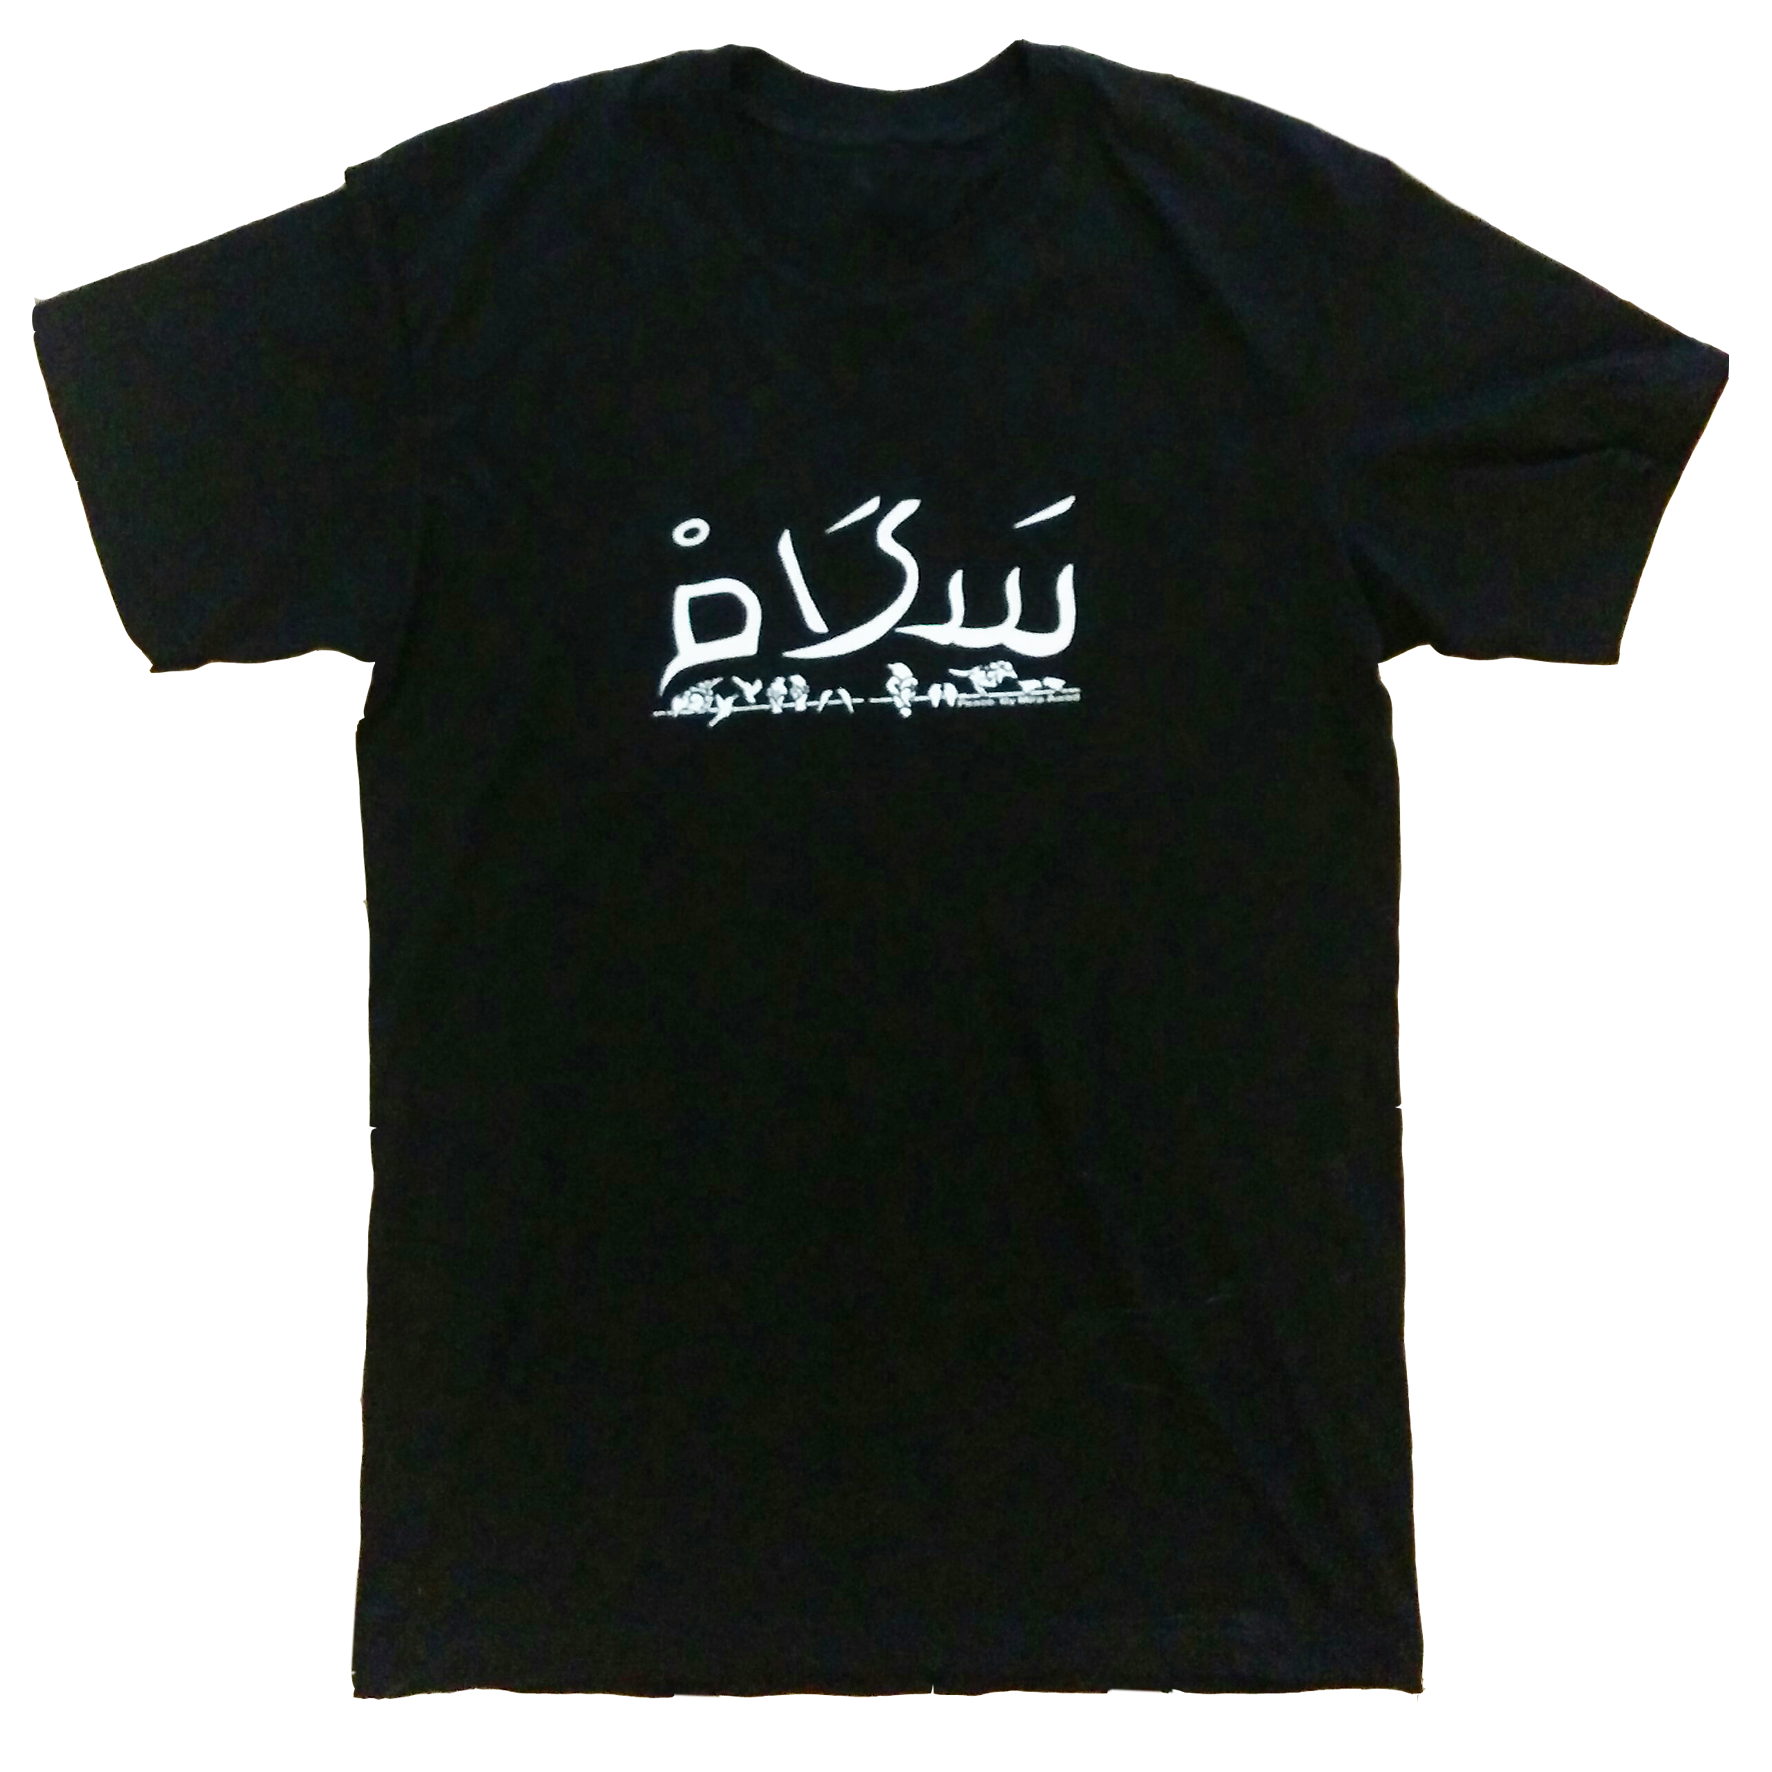 Design t shirt unique - A Unique Design Of The Word Peace Written Both In Hebrew And Arabic By Mira Awad